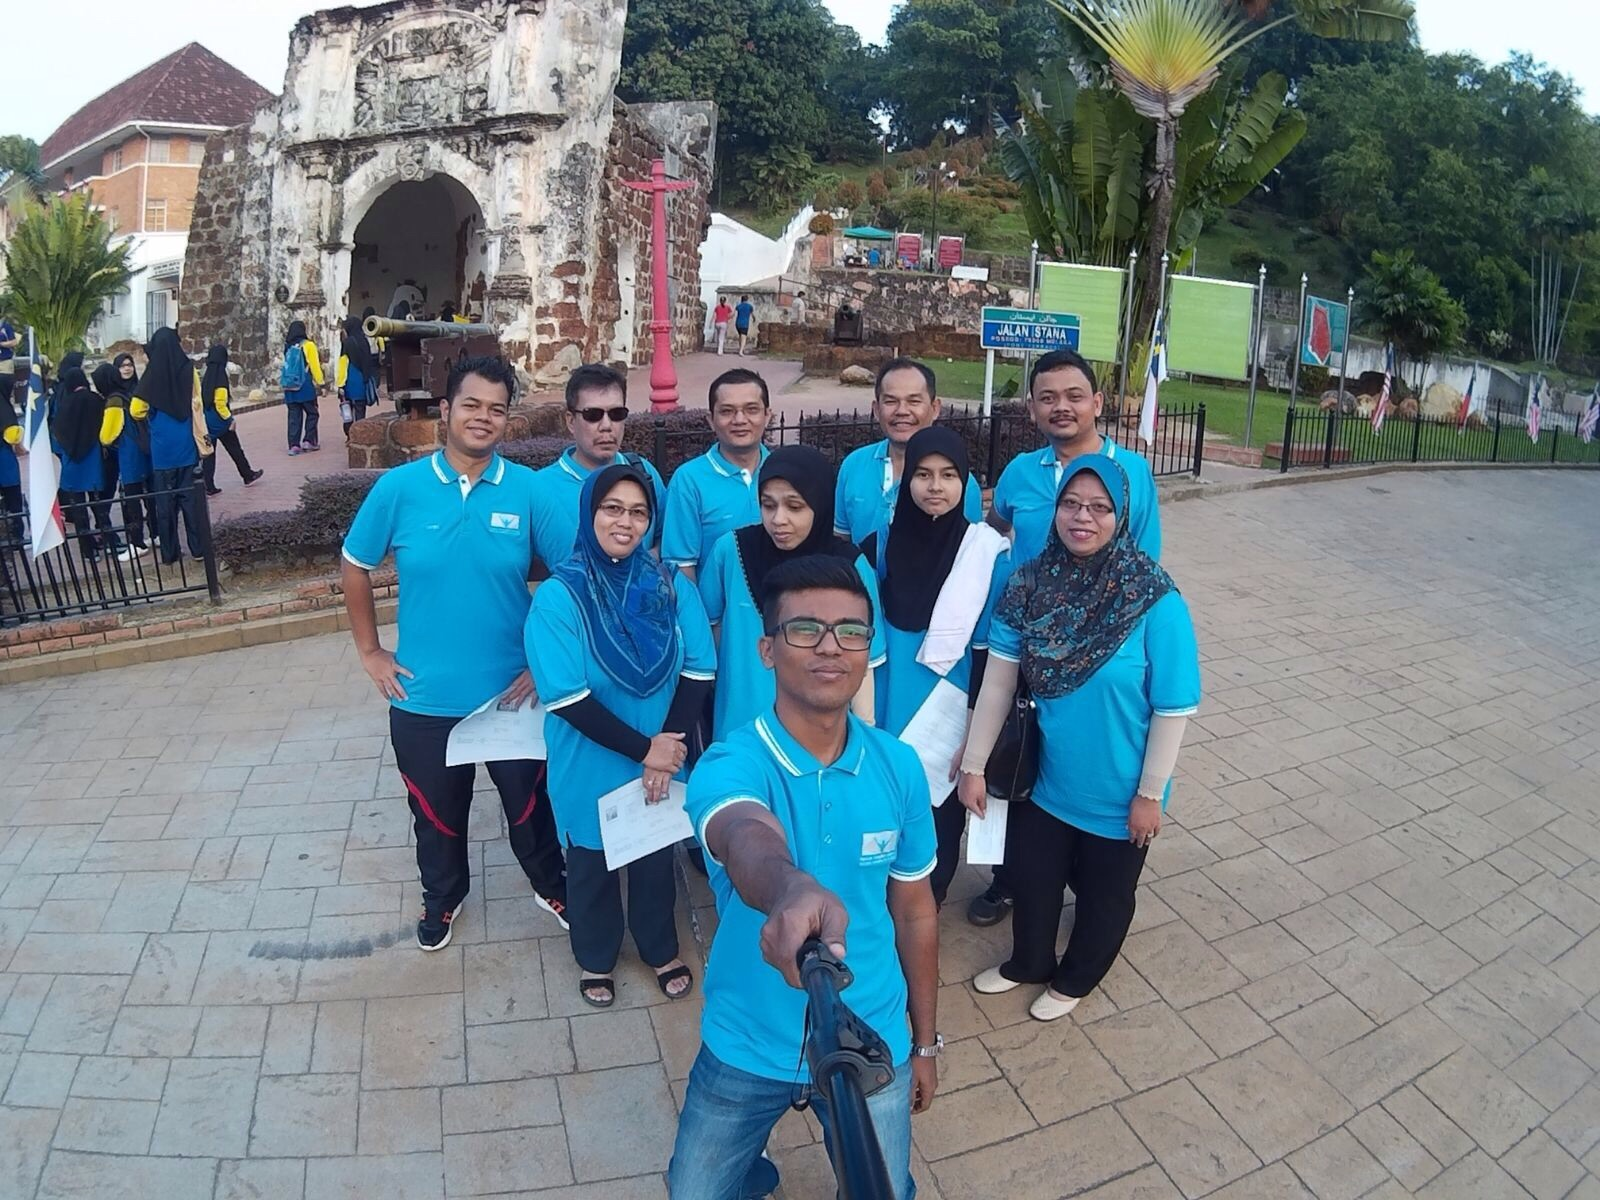 Group selfie with A Famosa as Background